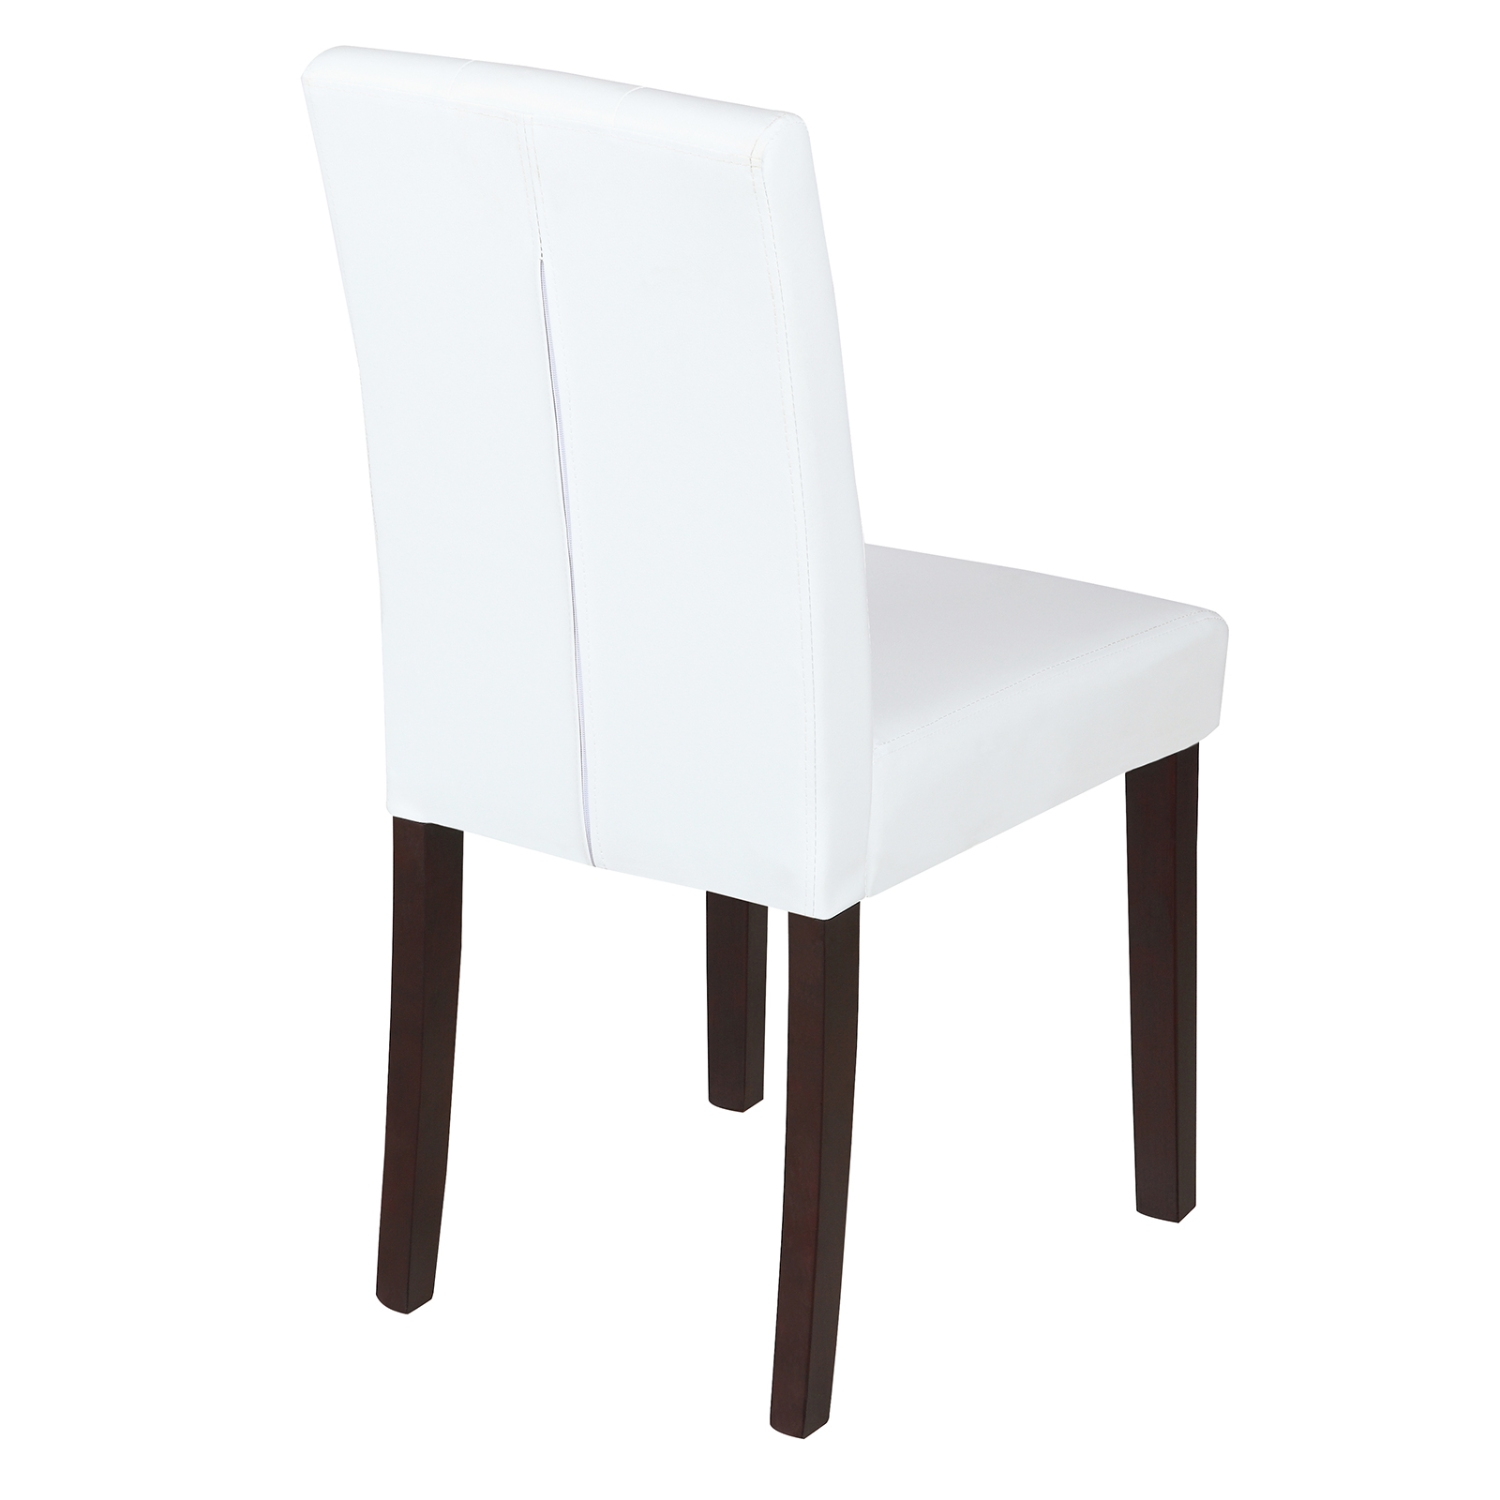 White Leather Dining Room Chairs Elegant Ivory White Leather Dining Room Chair Kitchen